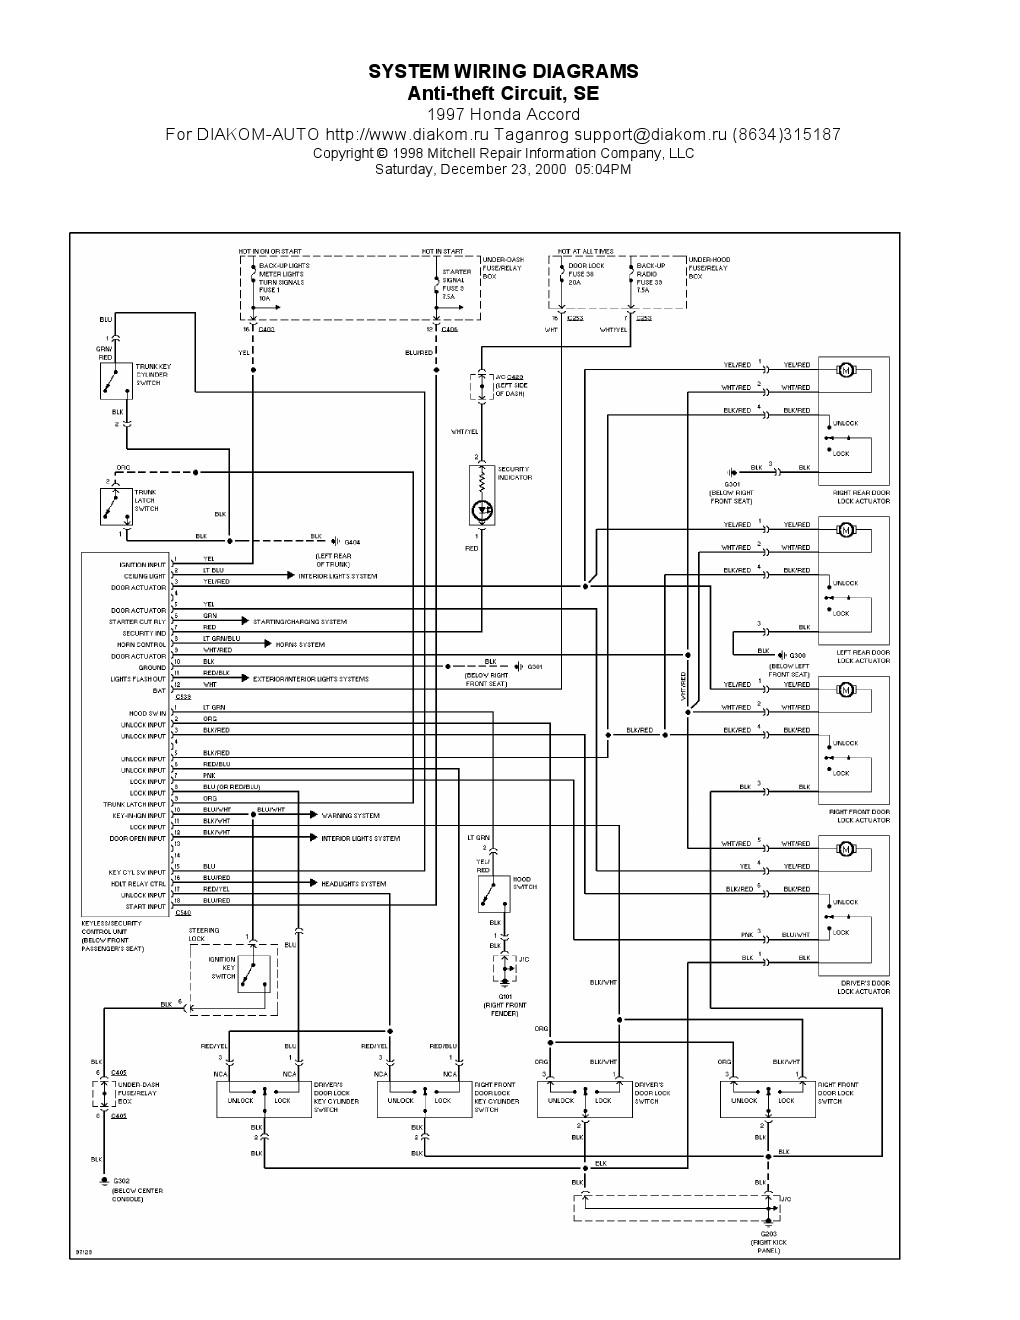 1996 Honda Accord Dash Wiring Schematic Free Diagram For You 1998 Fuse Box 94 Under Trusted Rh 20 17 3 Gartenmoebel Rupp De Dodge Dakota Jeep Cherokee